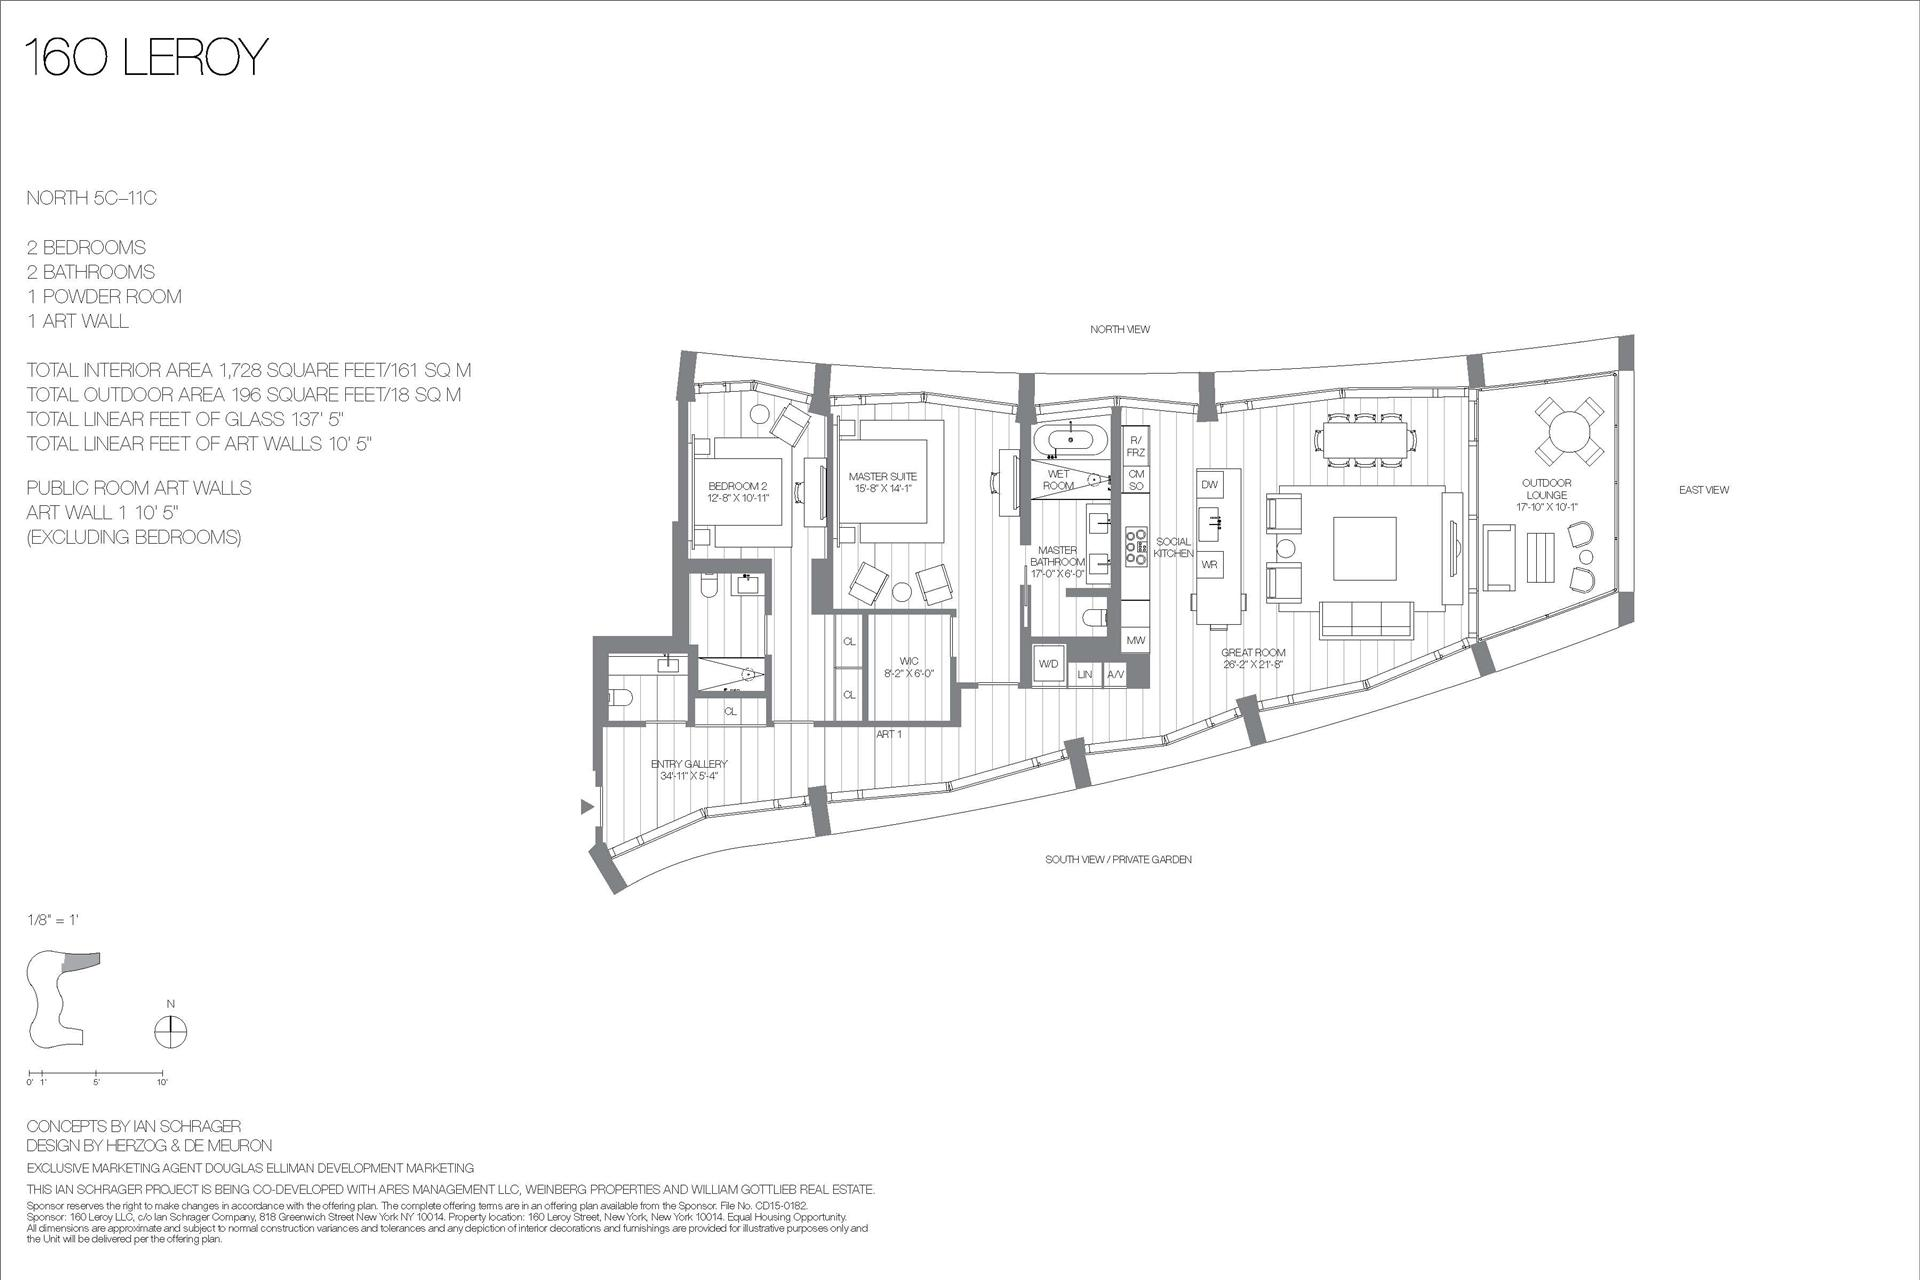 Floor plan of 160 Leroy St, NORTH7C - West Village - Meatpacking District, New York